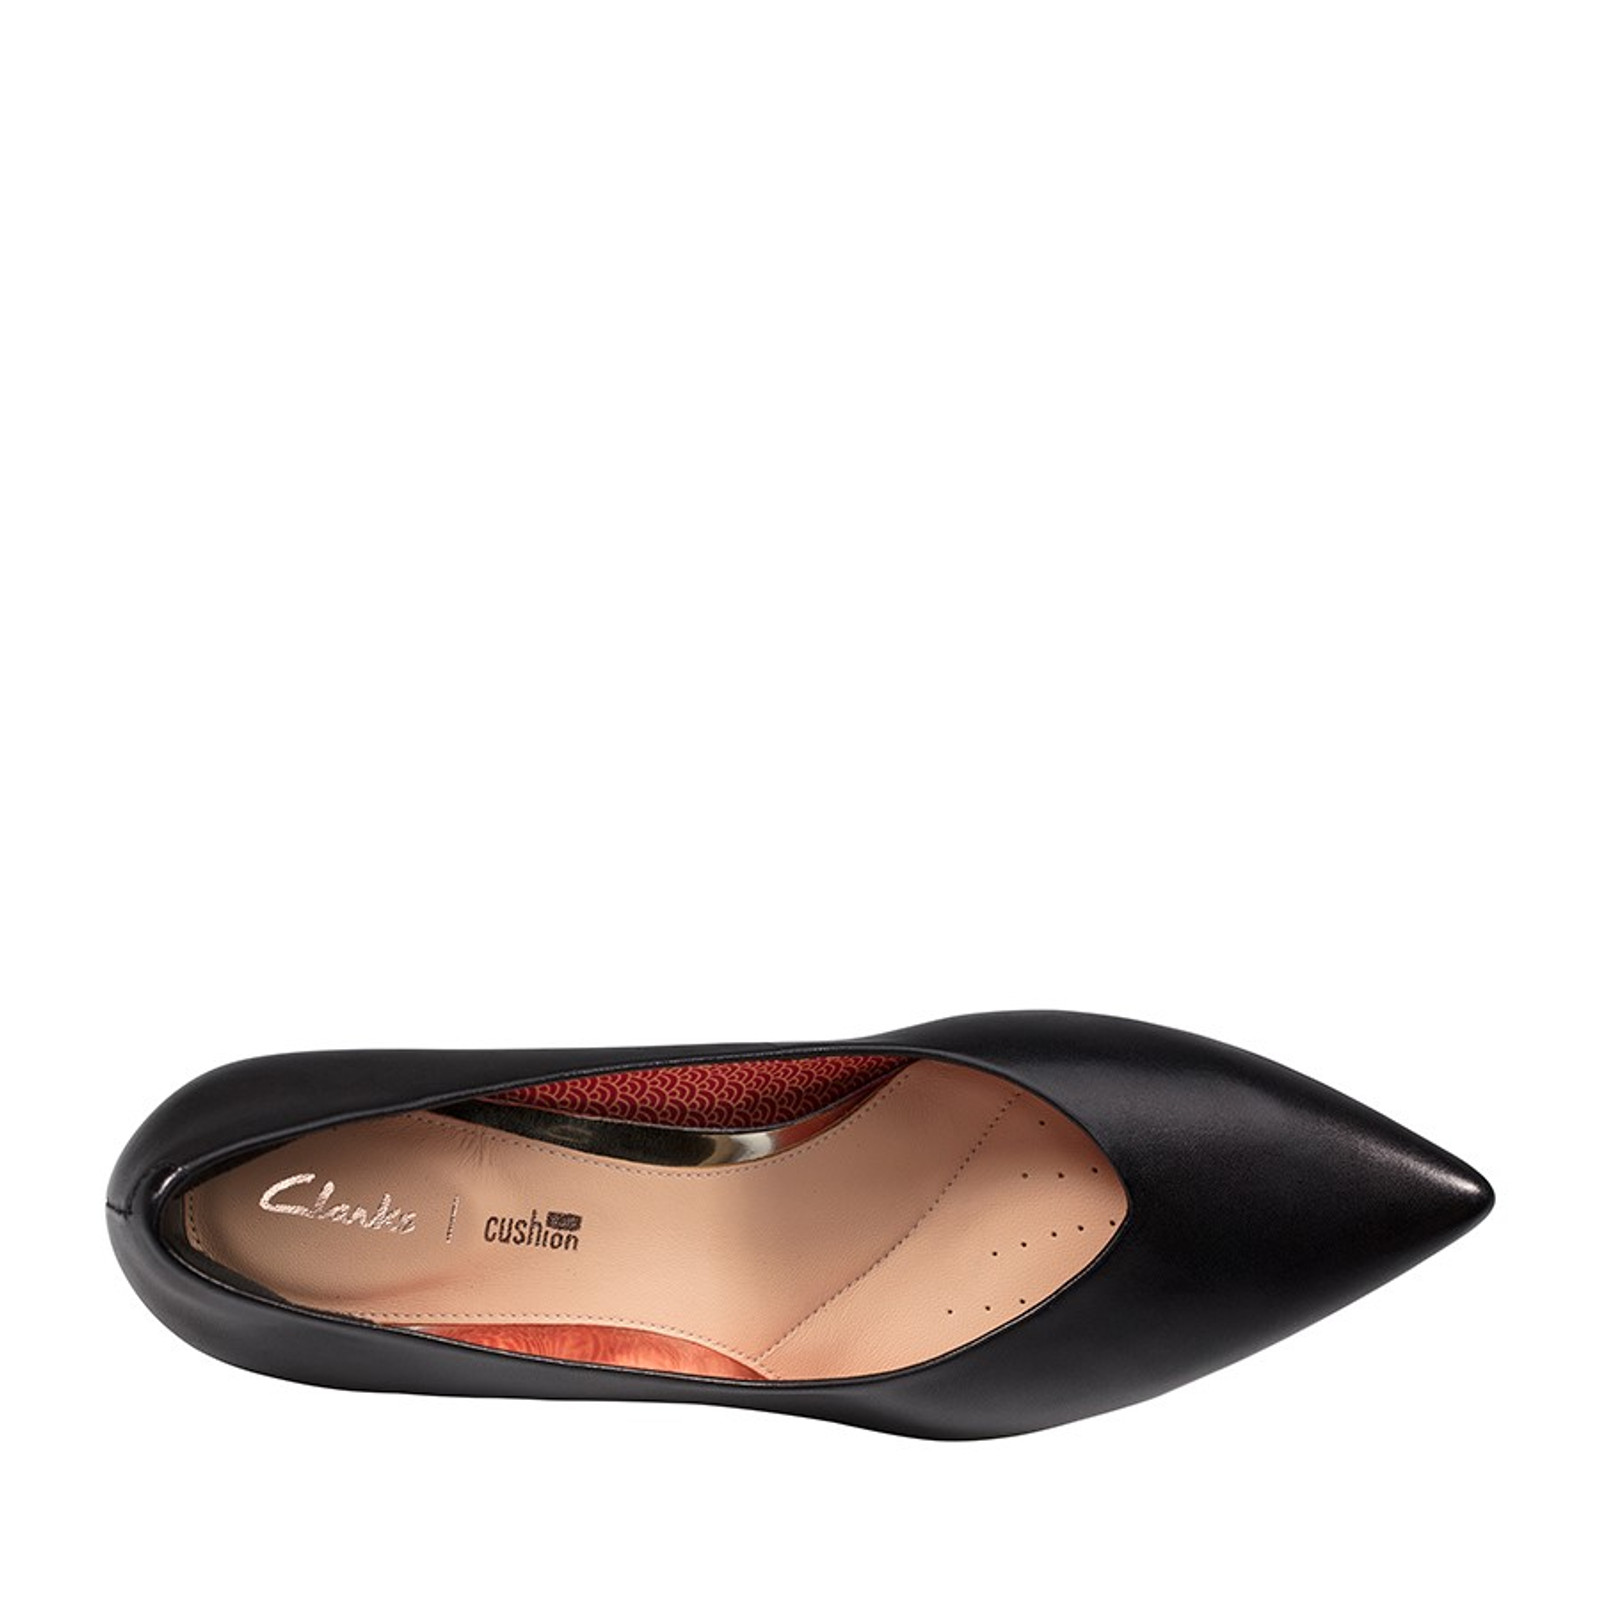 Clarks Womens LAINA55 COURT Black Interest Leather